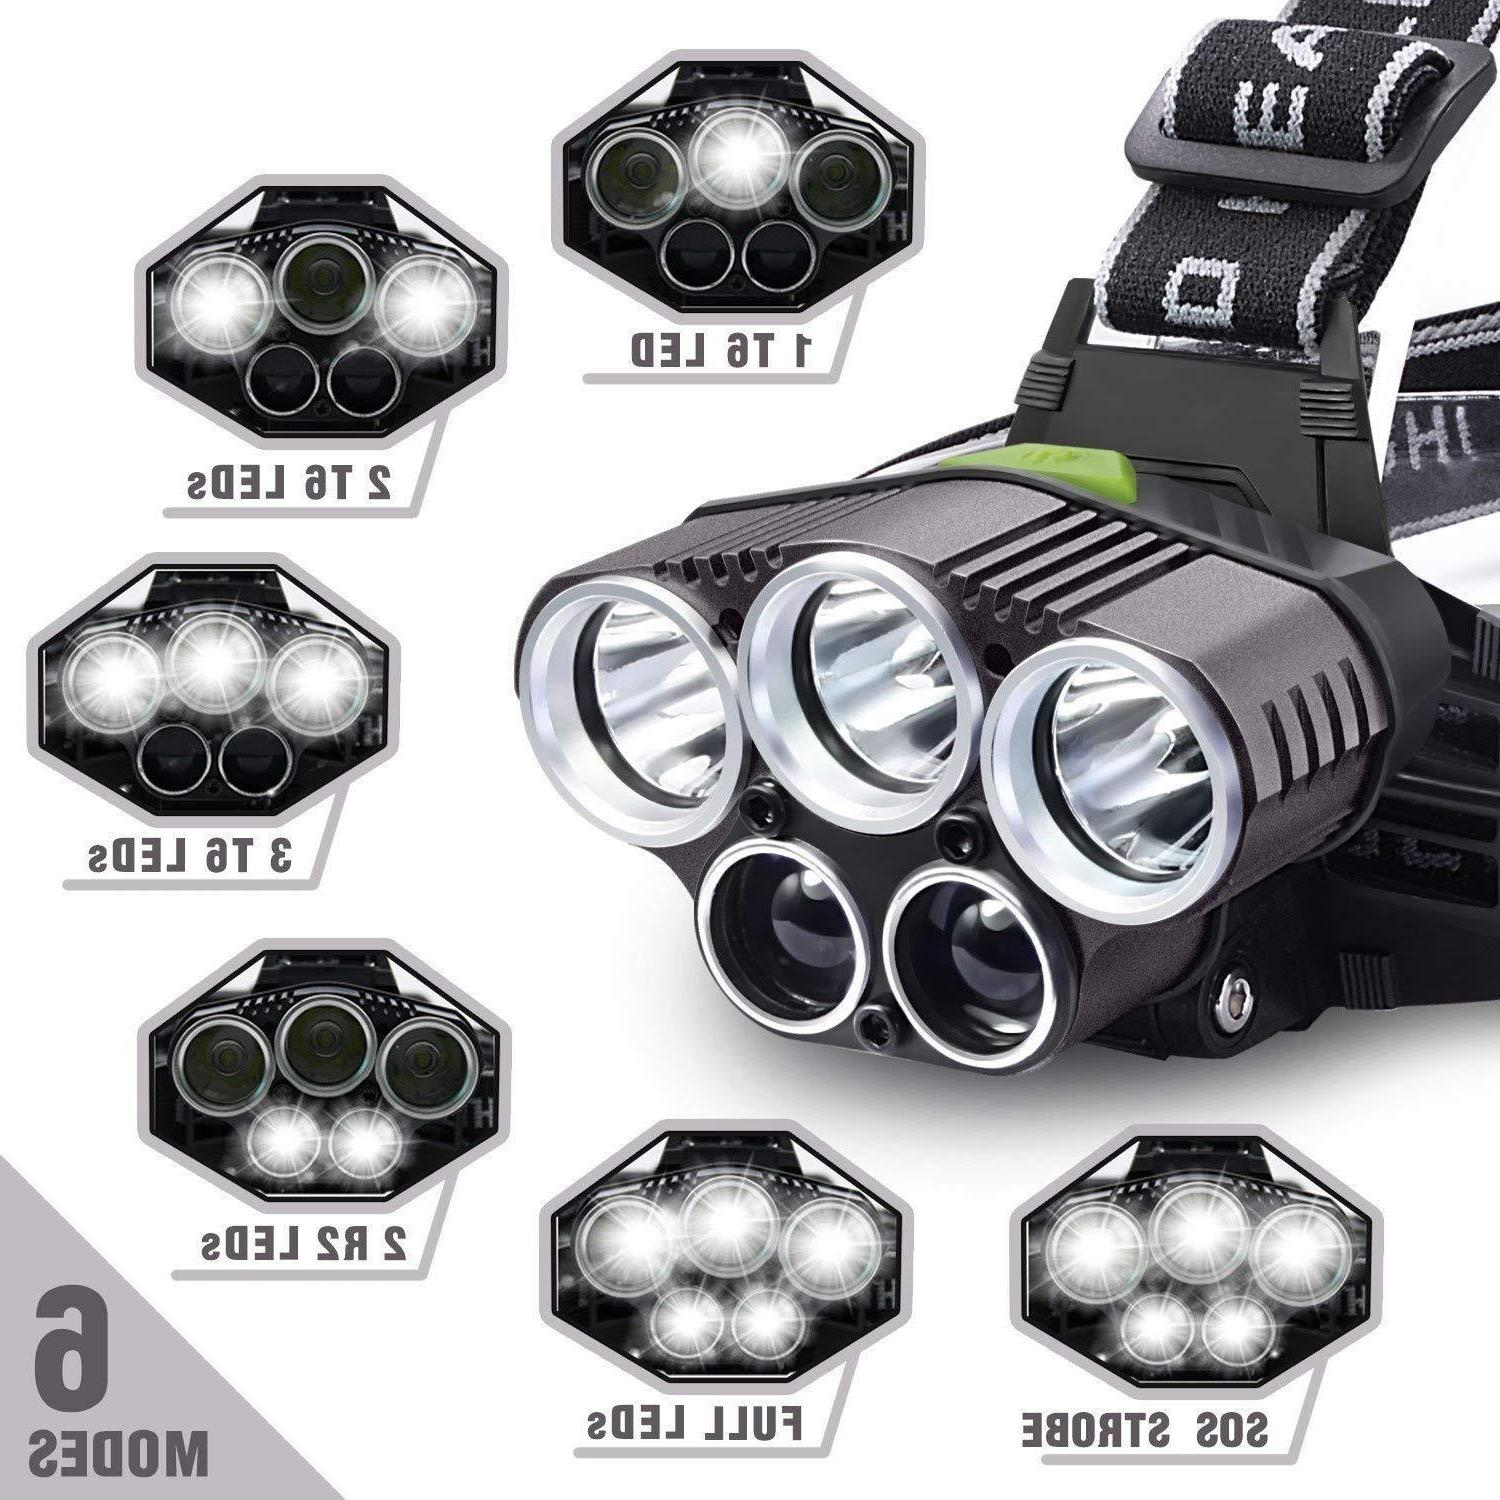 150000LM Headlamp 18650 Headlight Lamp+Batt+Charger